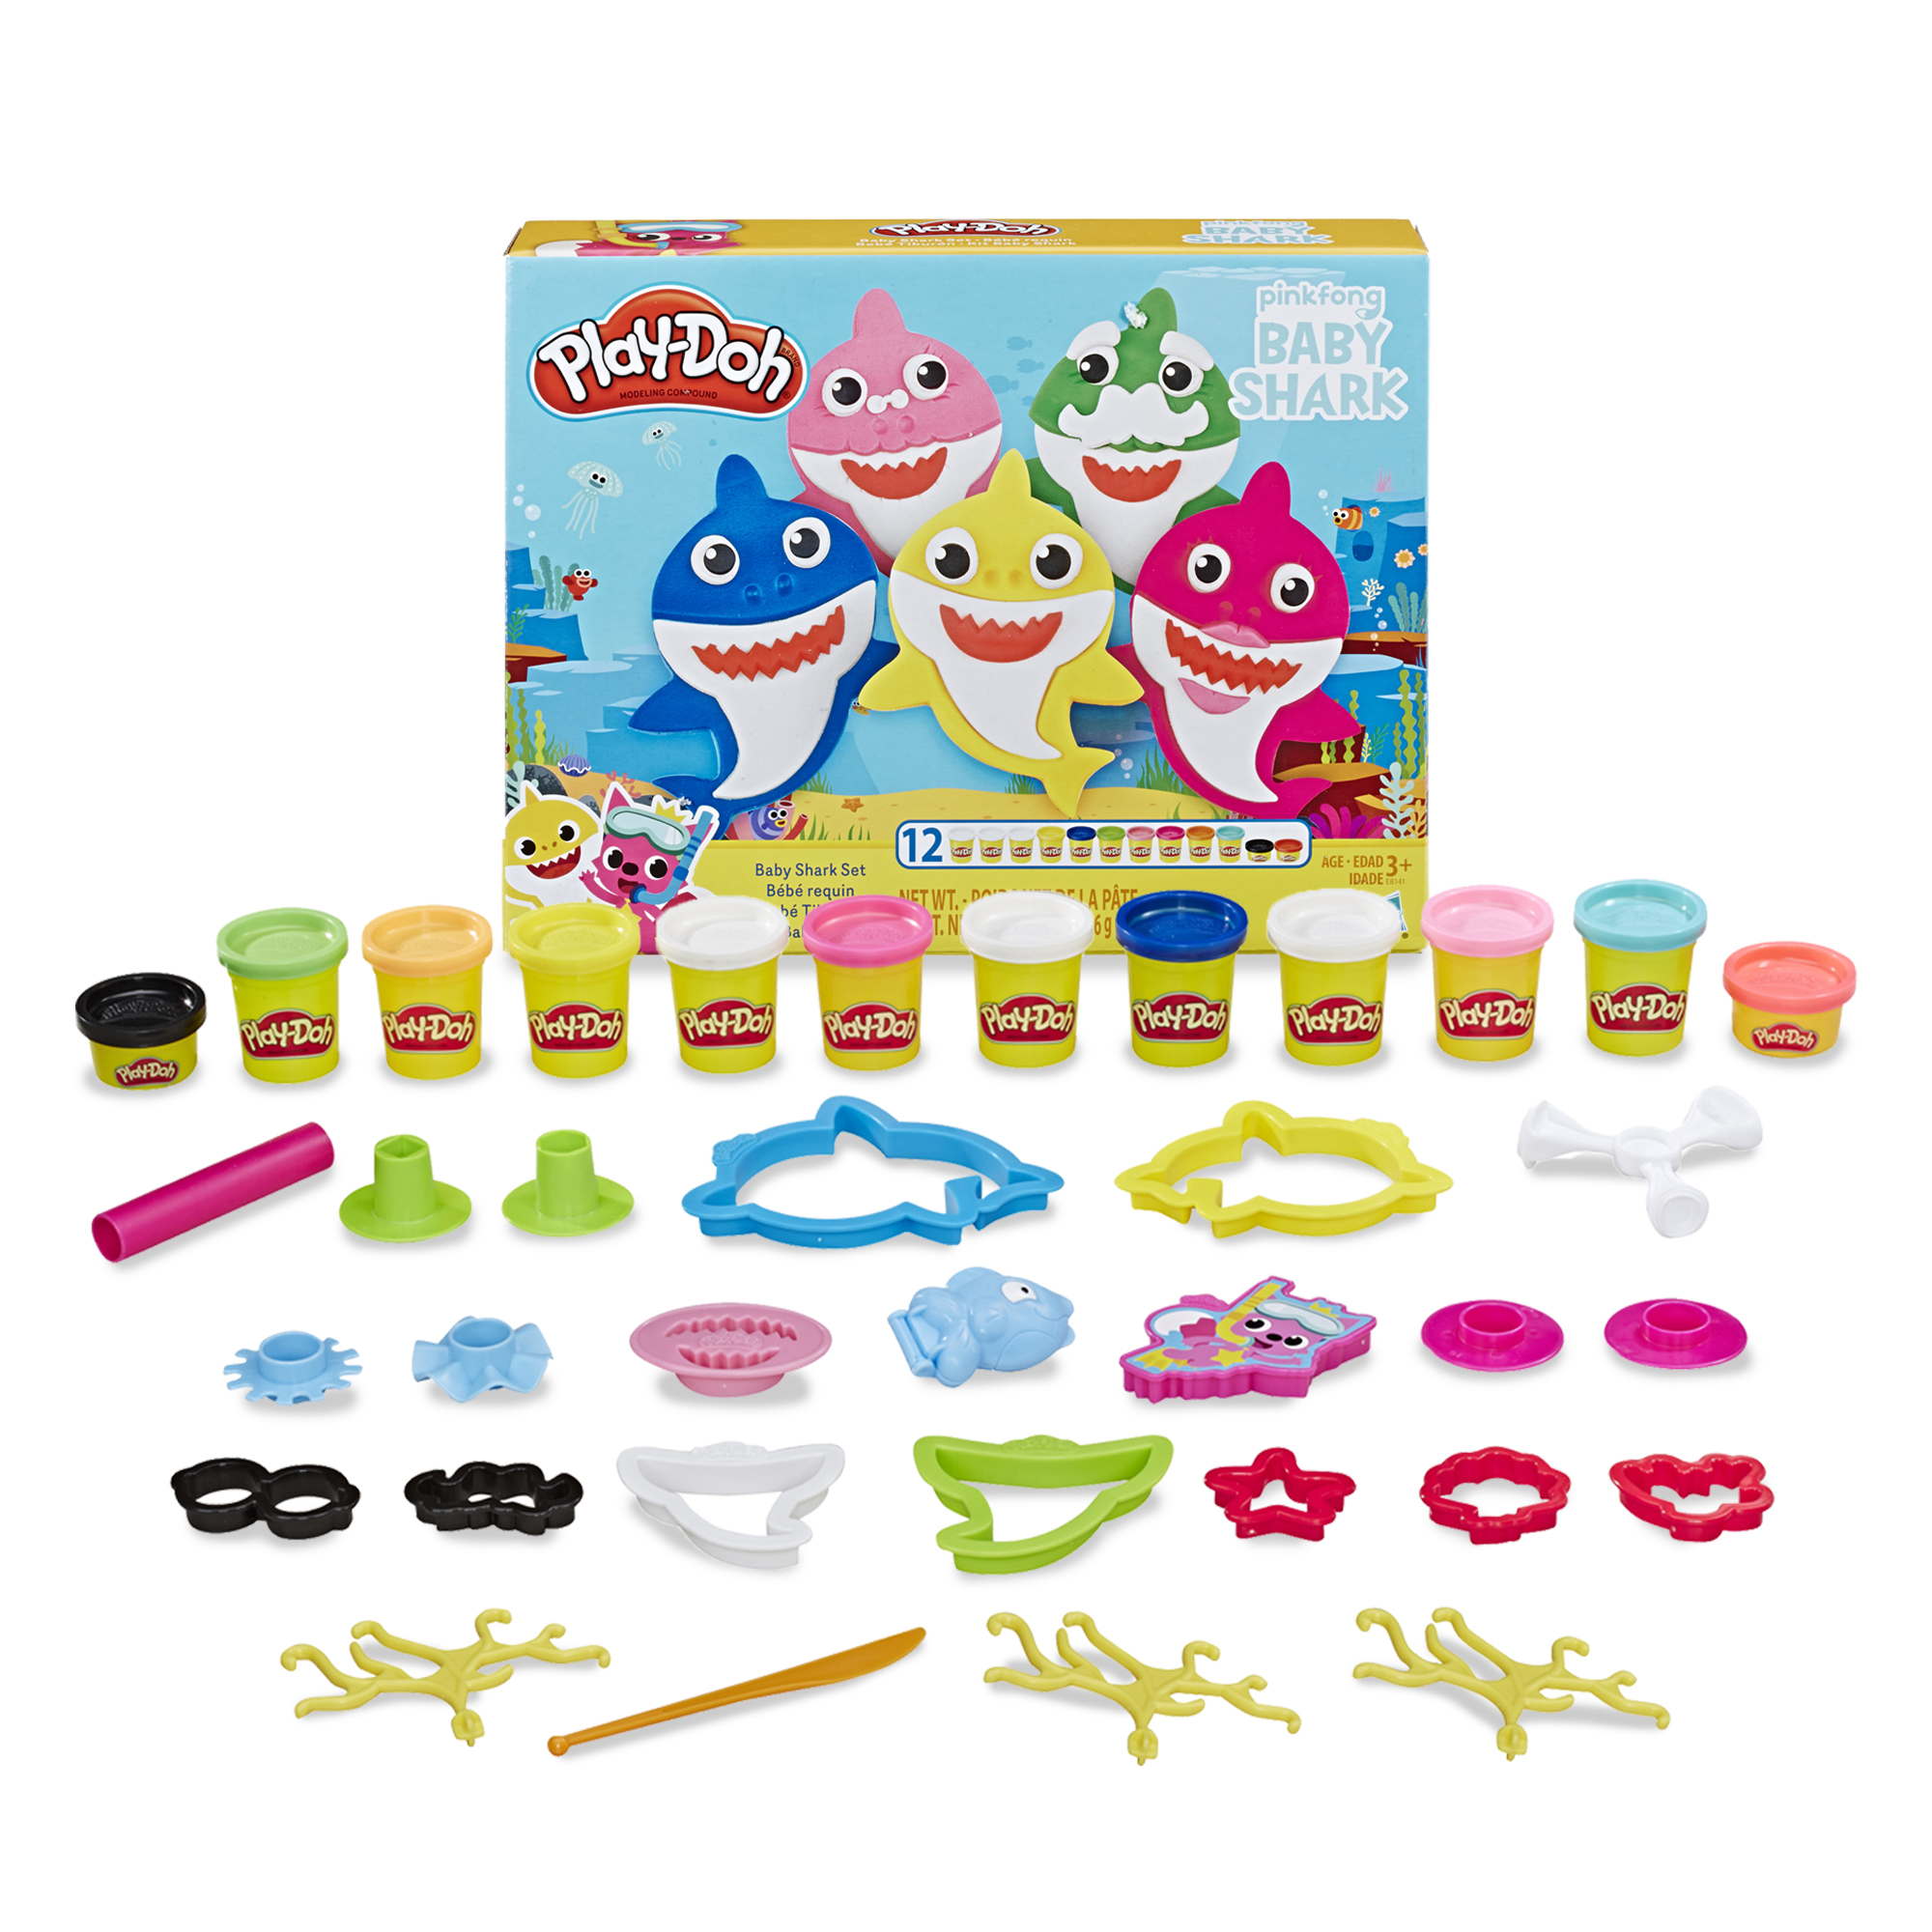 Play-Doh Pinkfong Baby Shark Set ONLY $8.88 Shipped (Reg $15)